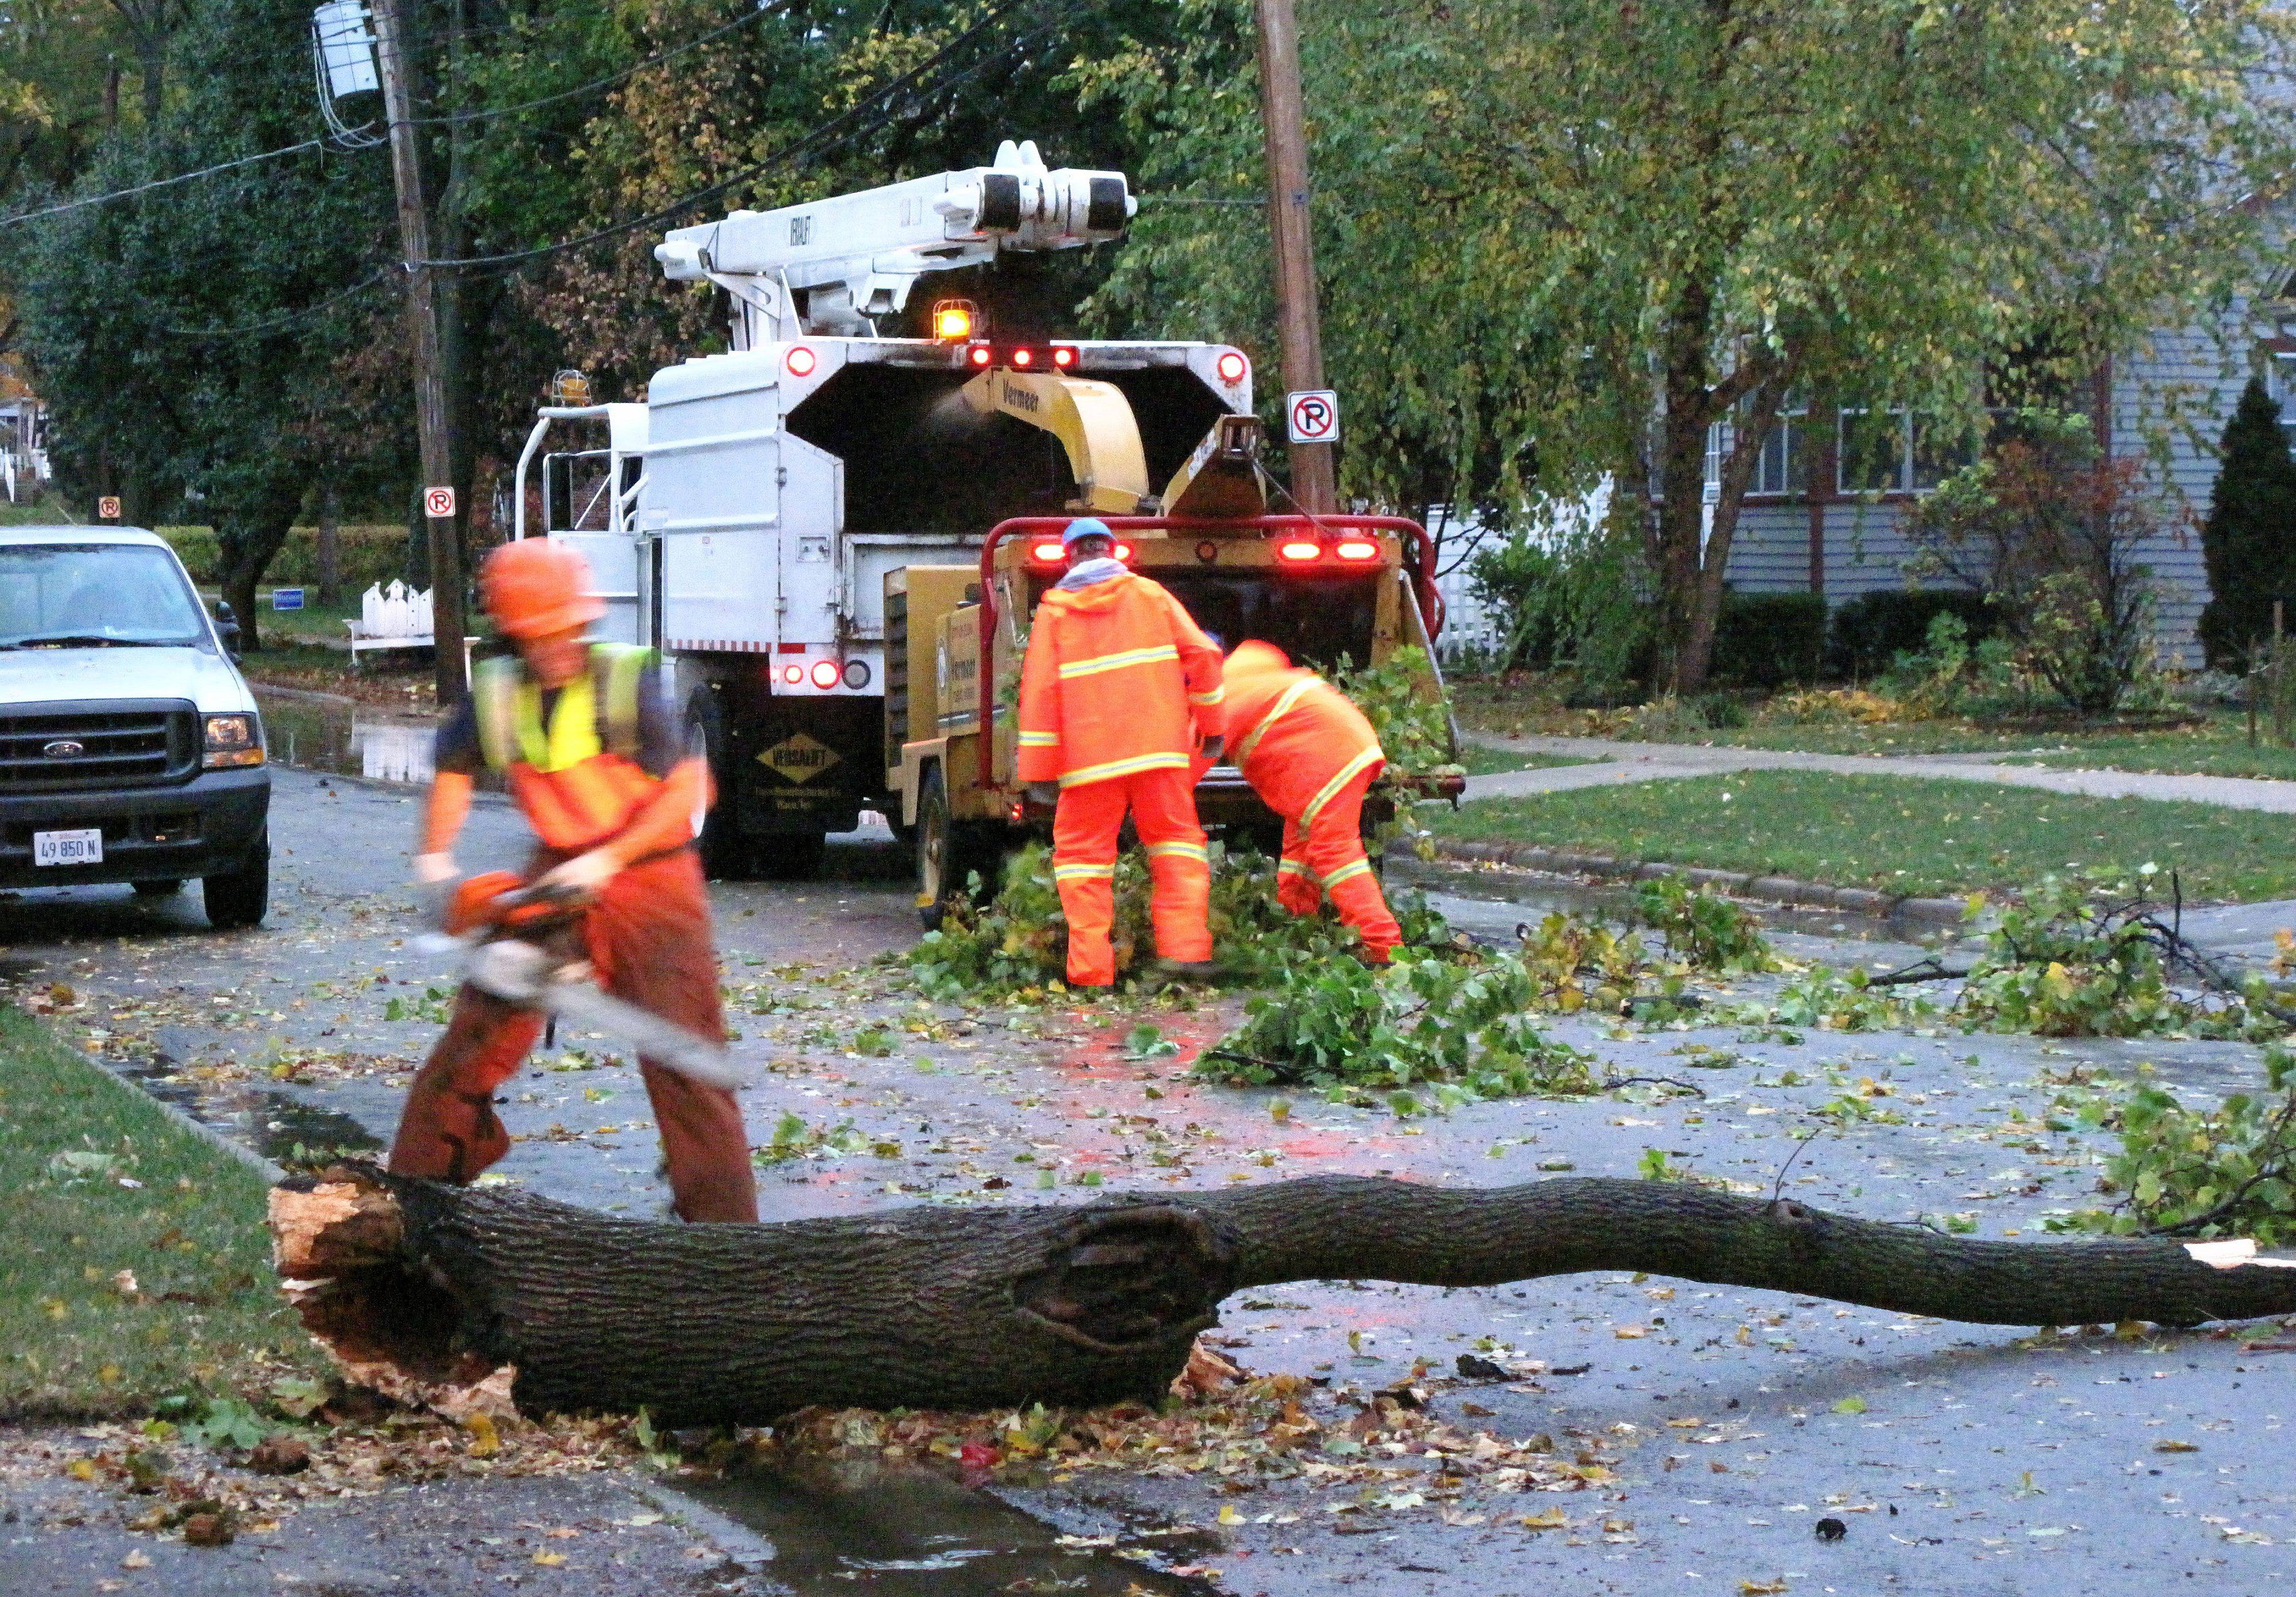 A crew removes a tree on North Edison Street in Elgin that caused a power outage in the area Tuesday morning.